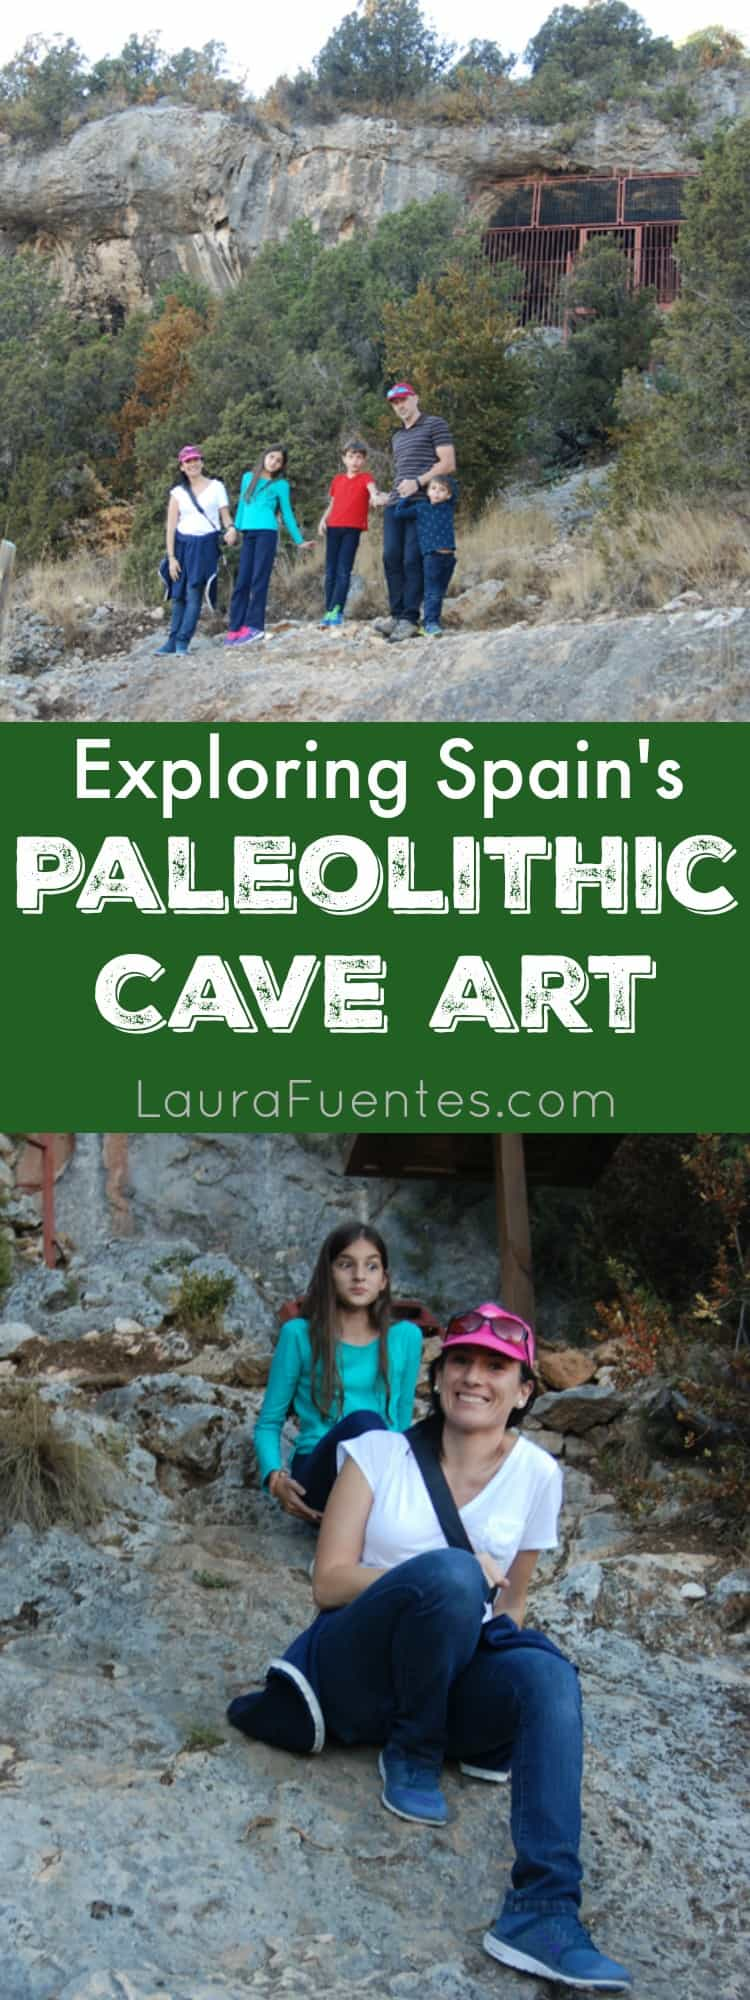 Ever wanted to take your kids to a cave? Here's what we learned in the caves of Spain!